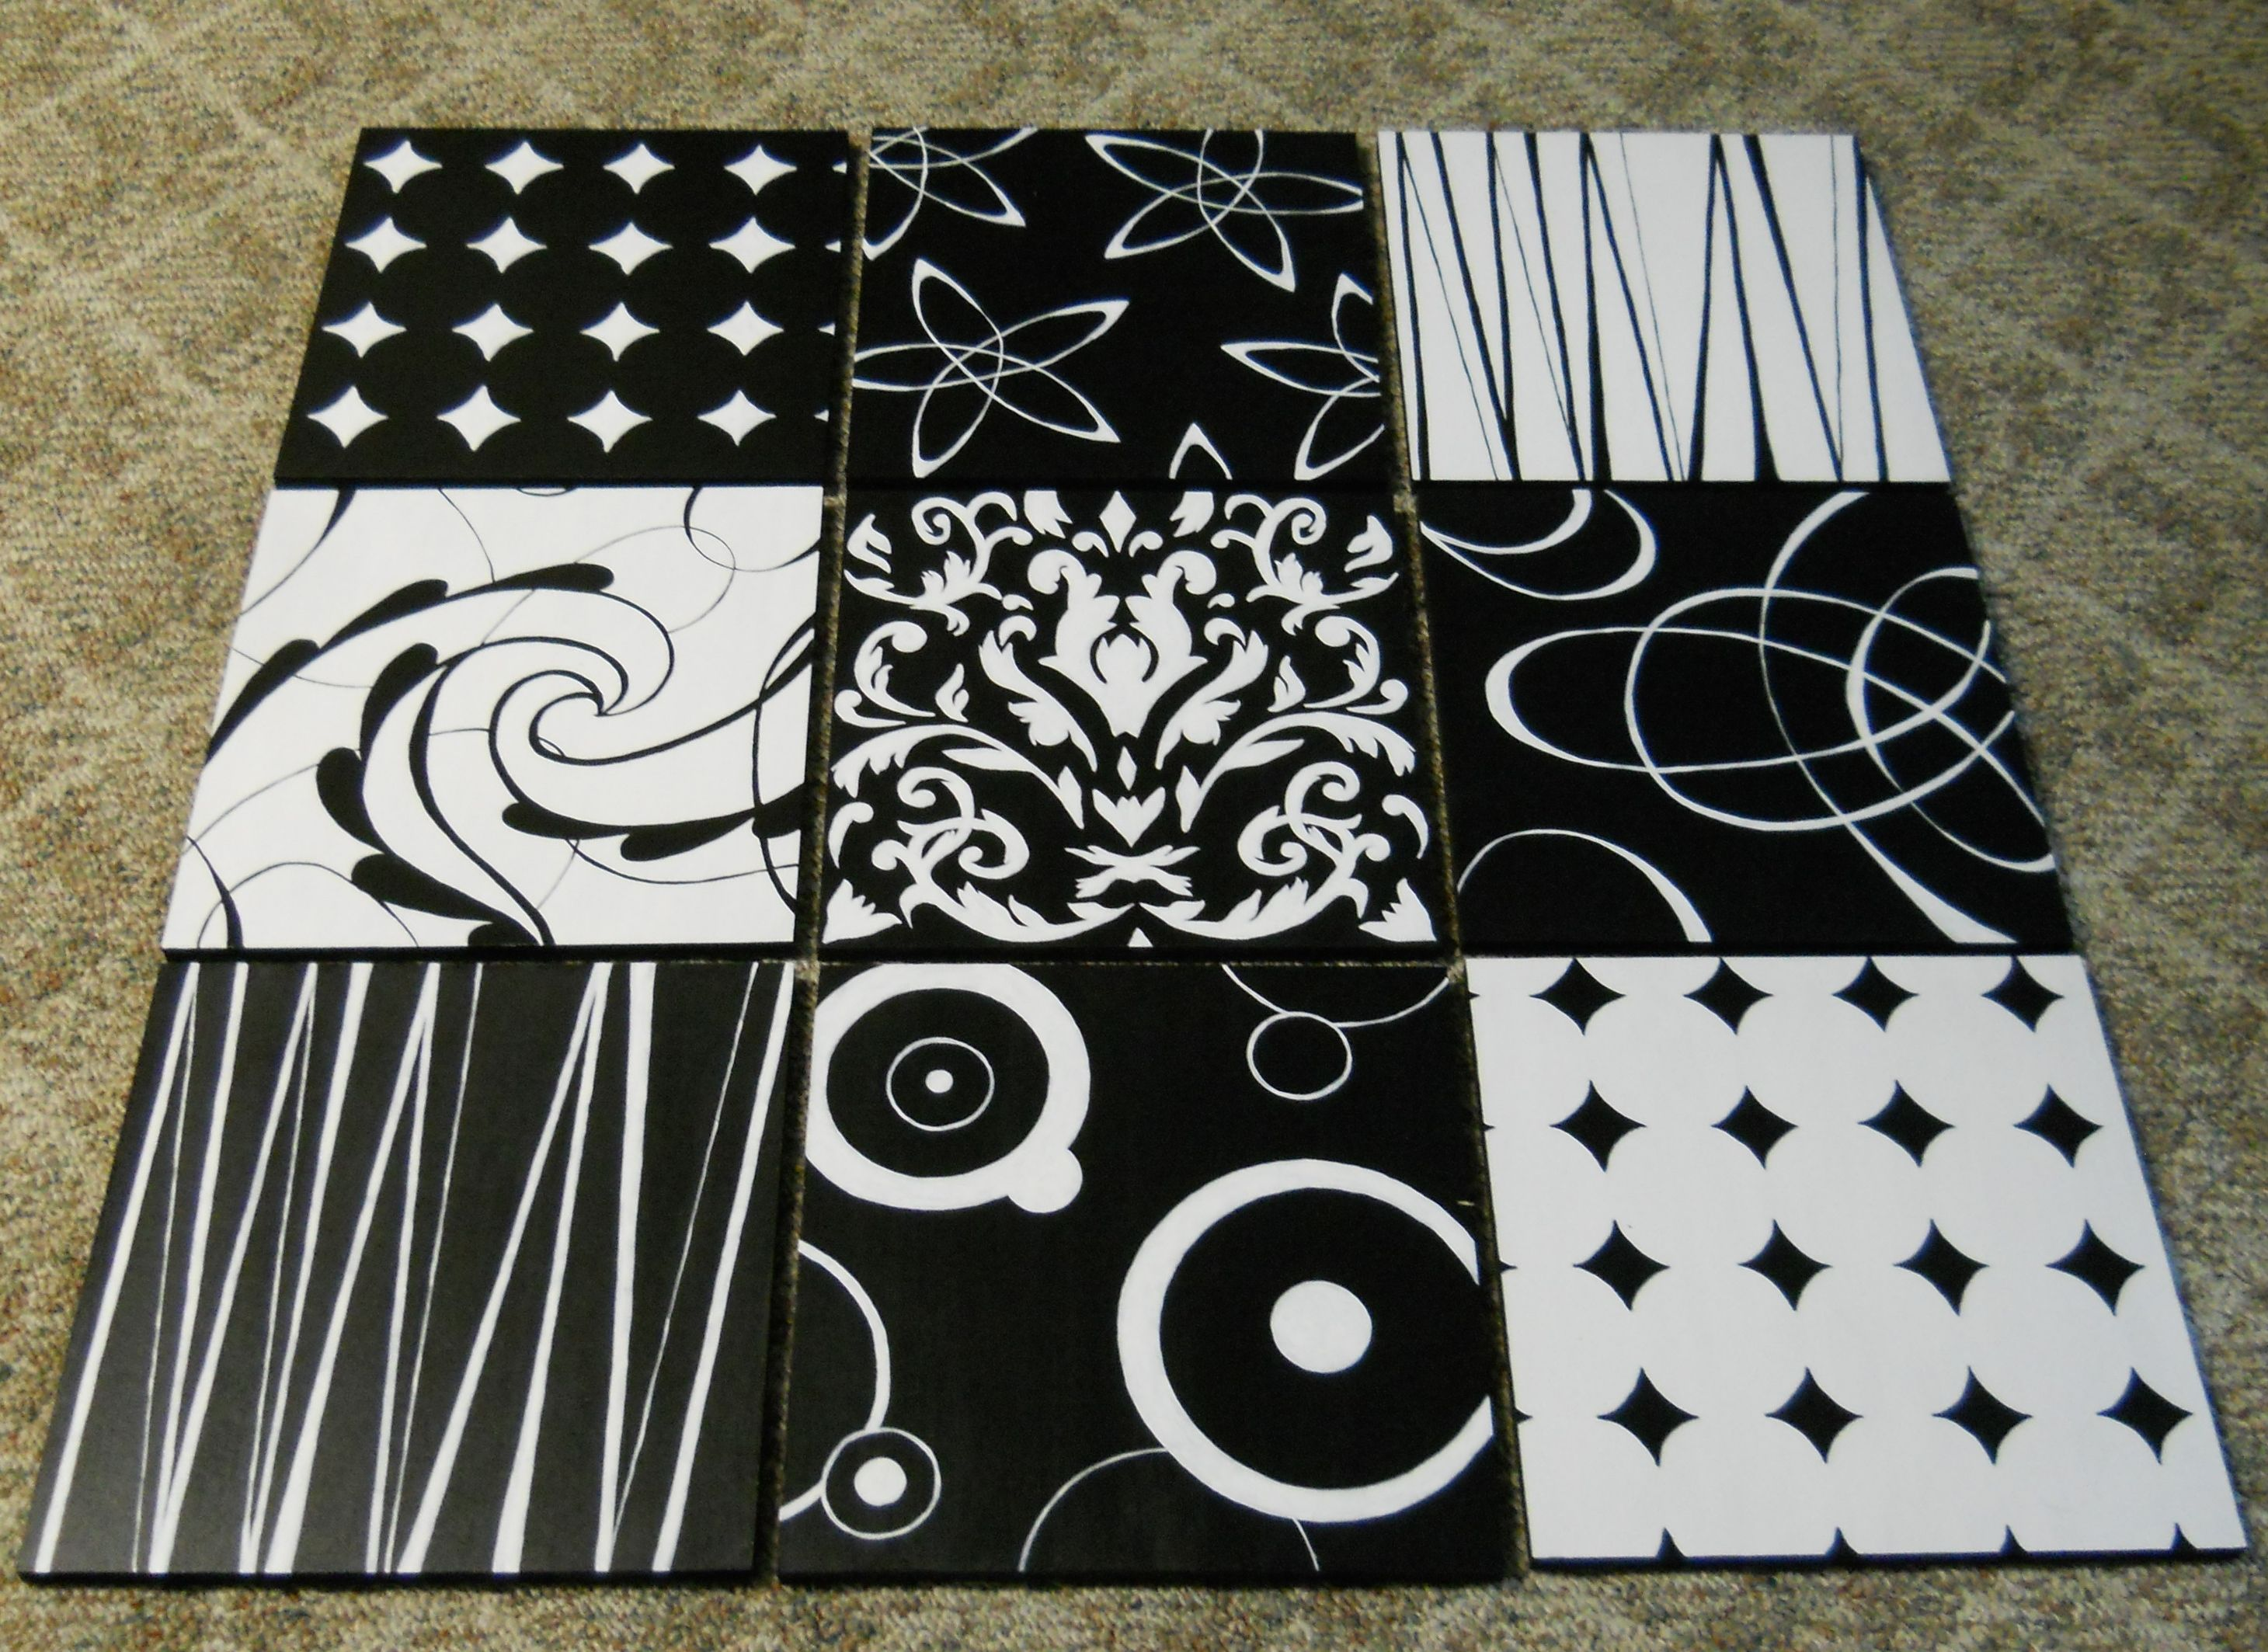 Scrapbook paper wall art - A Black And White 9 Panel Wall Hanging Inspired By Diy Scrapbook Page Wall Art